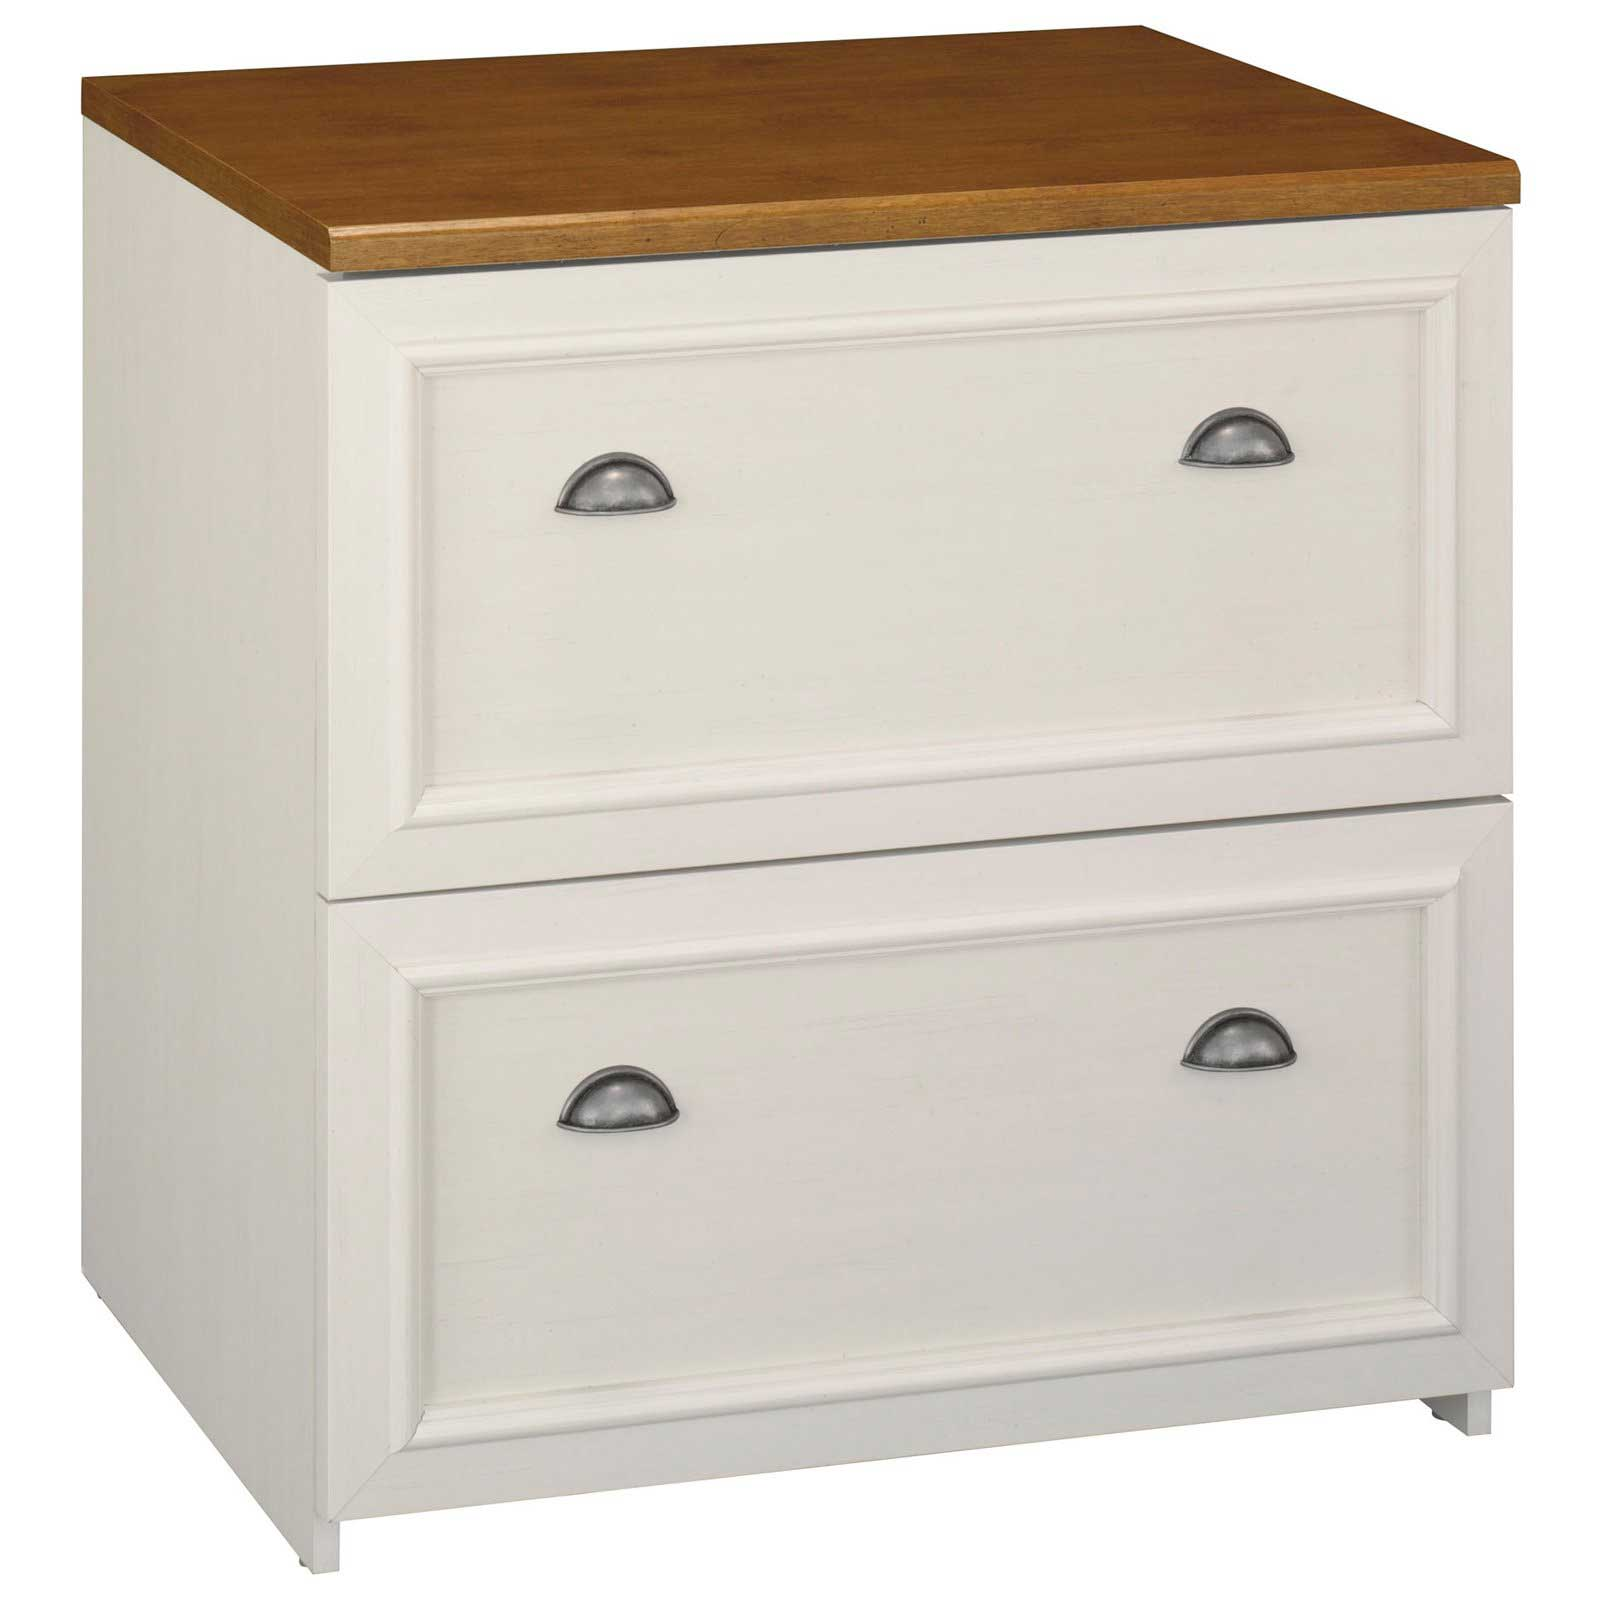 2 Drawer File Cabinet Antique White File Cabinets Office Furniture